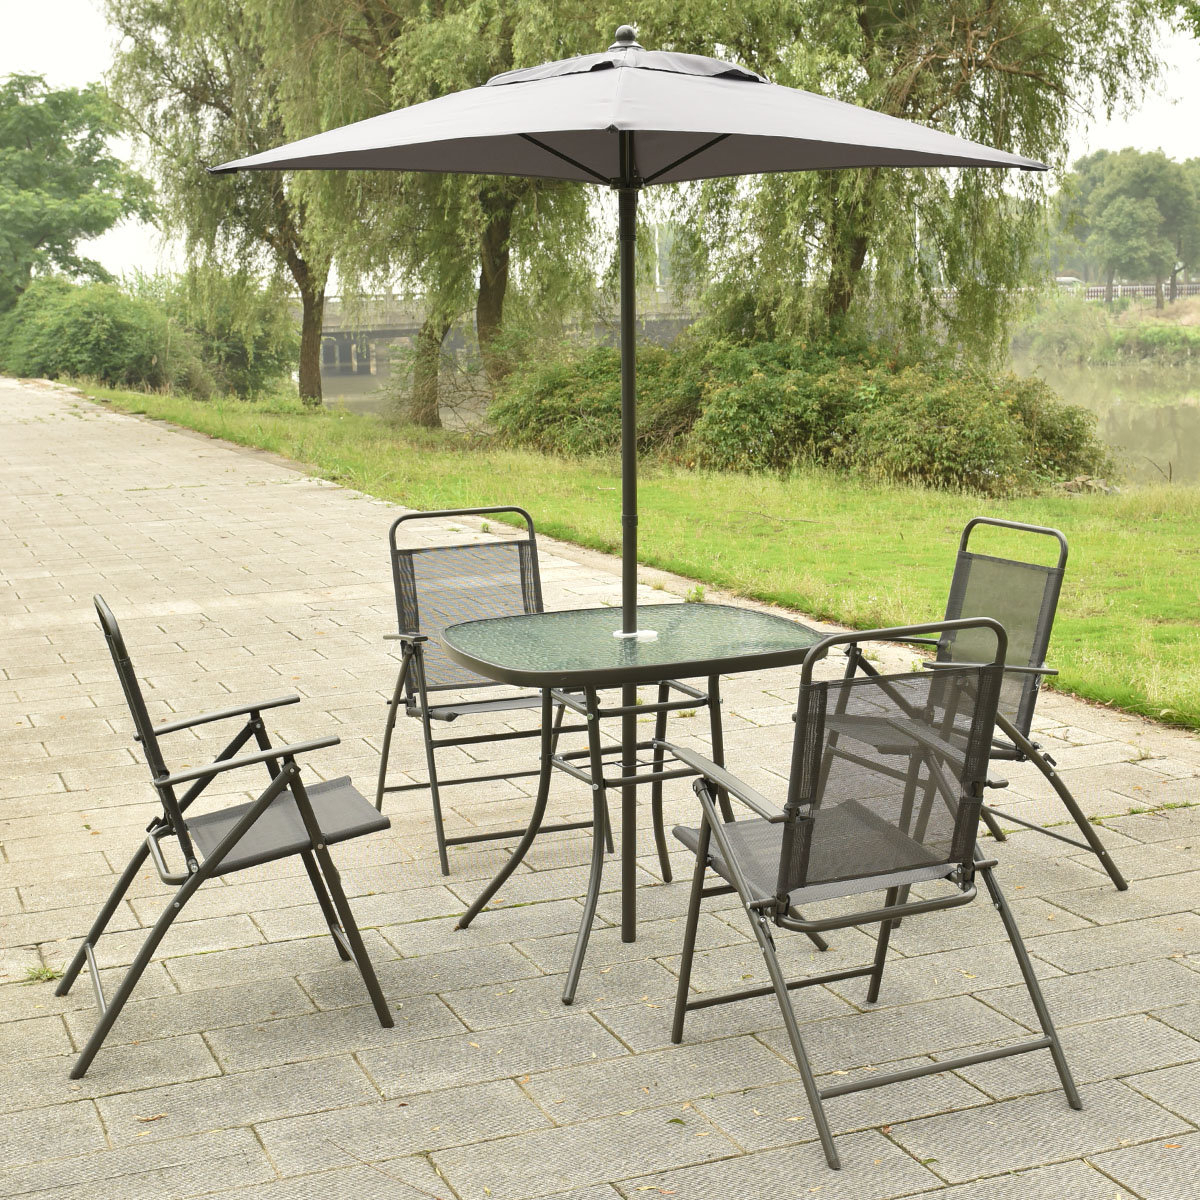 Most Current Cannock Market Umbrellas With Regard To Details About Ebern Designs Cannock 6 Piece Dining Set With Umbrella (View 14 of 20)